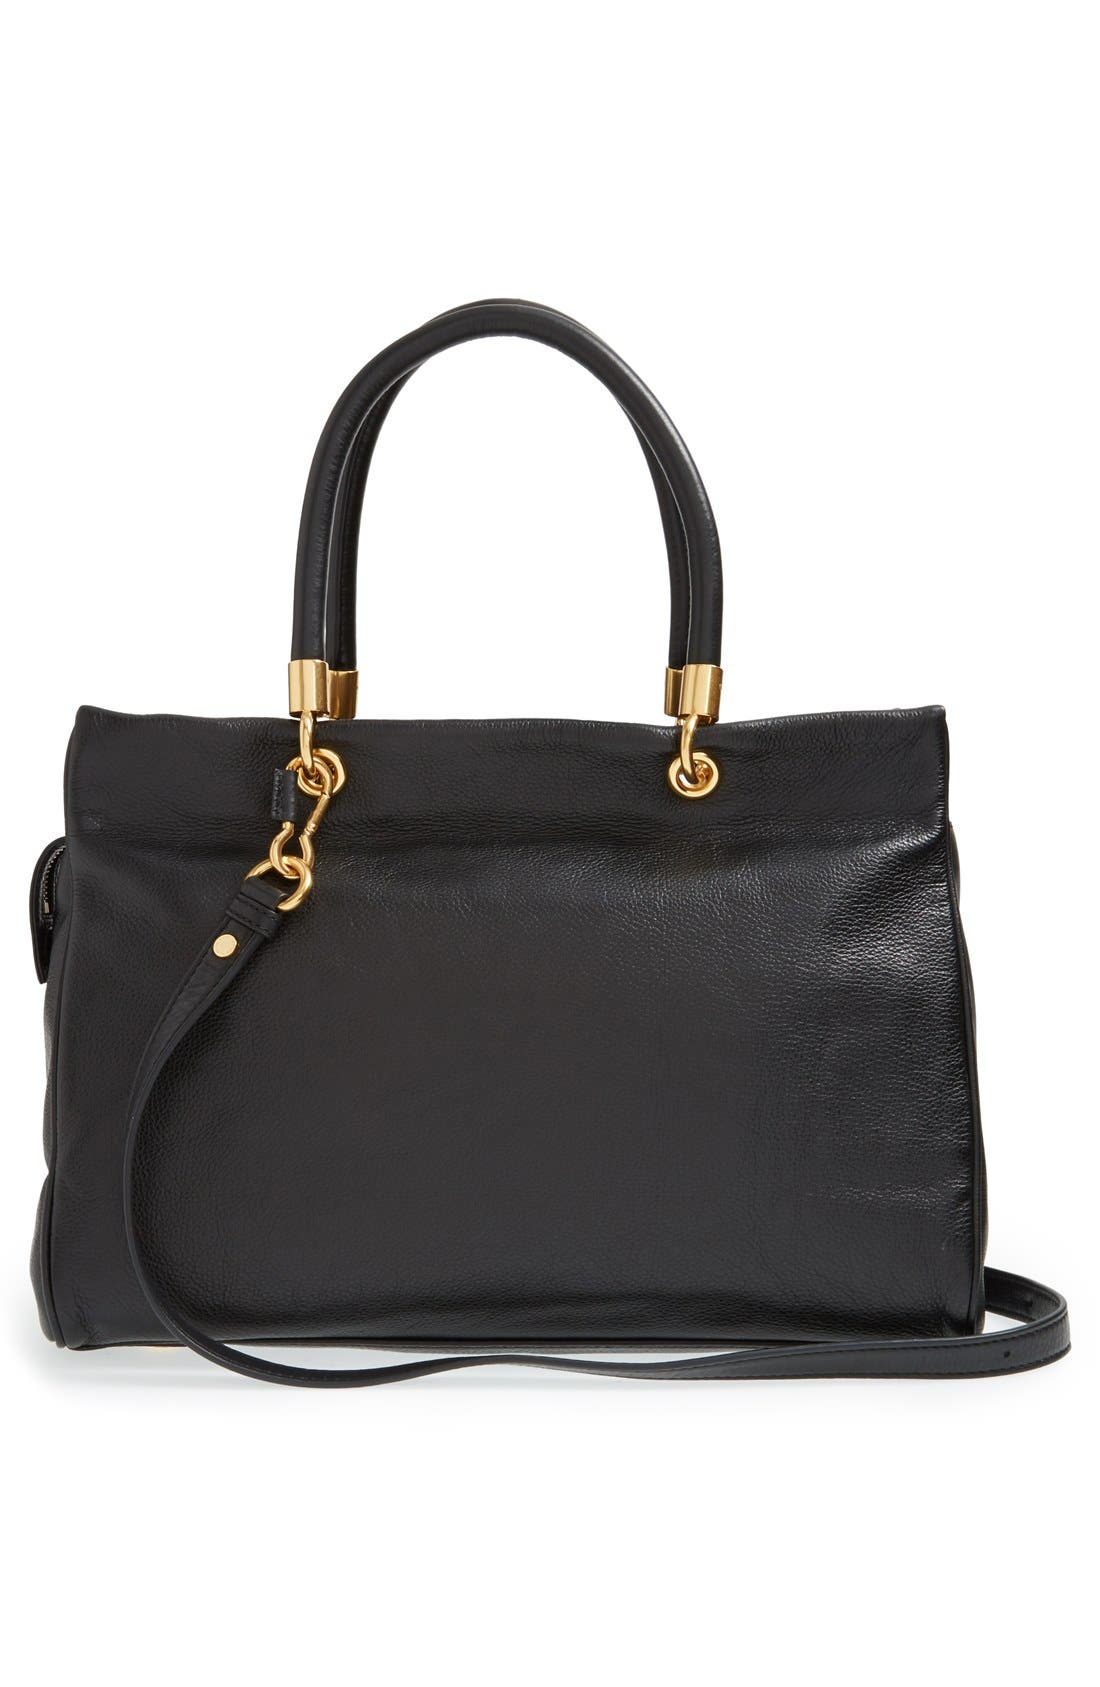 MARC JACOBS,                             MARC BY MARC JACOBS 'Too Hot to Handle' Tote,                             Alternate thumbnail 3, color,                             001